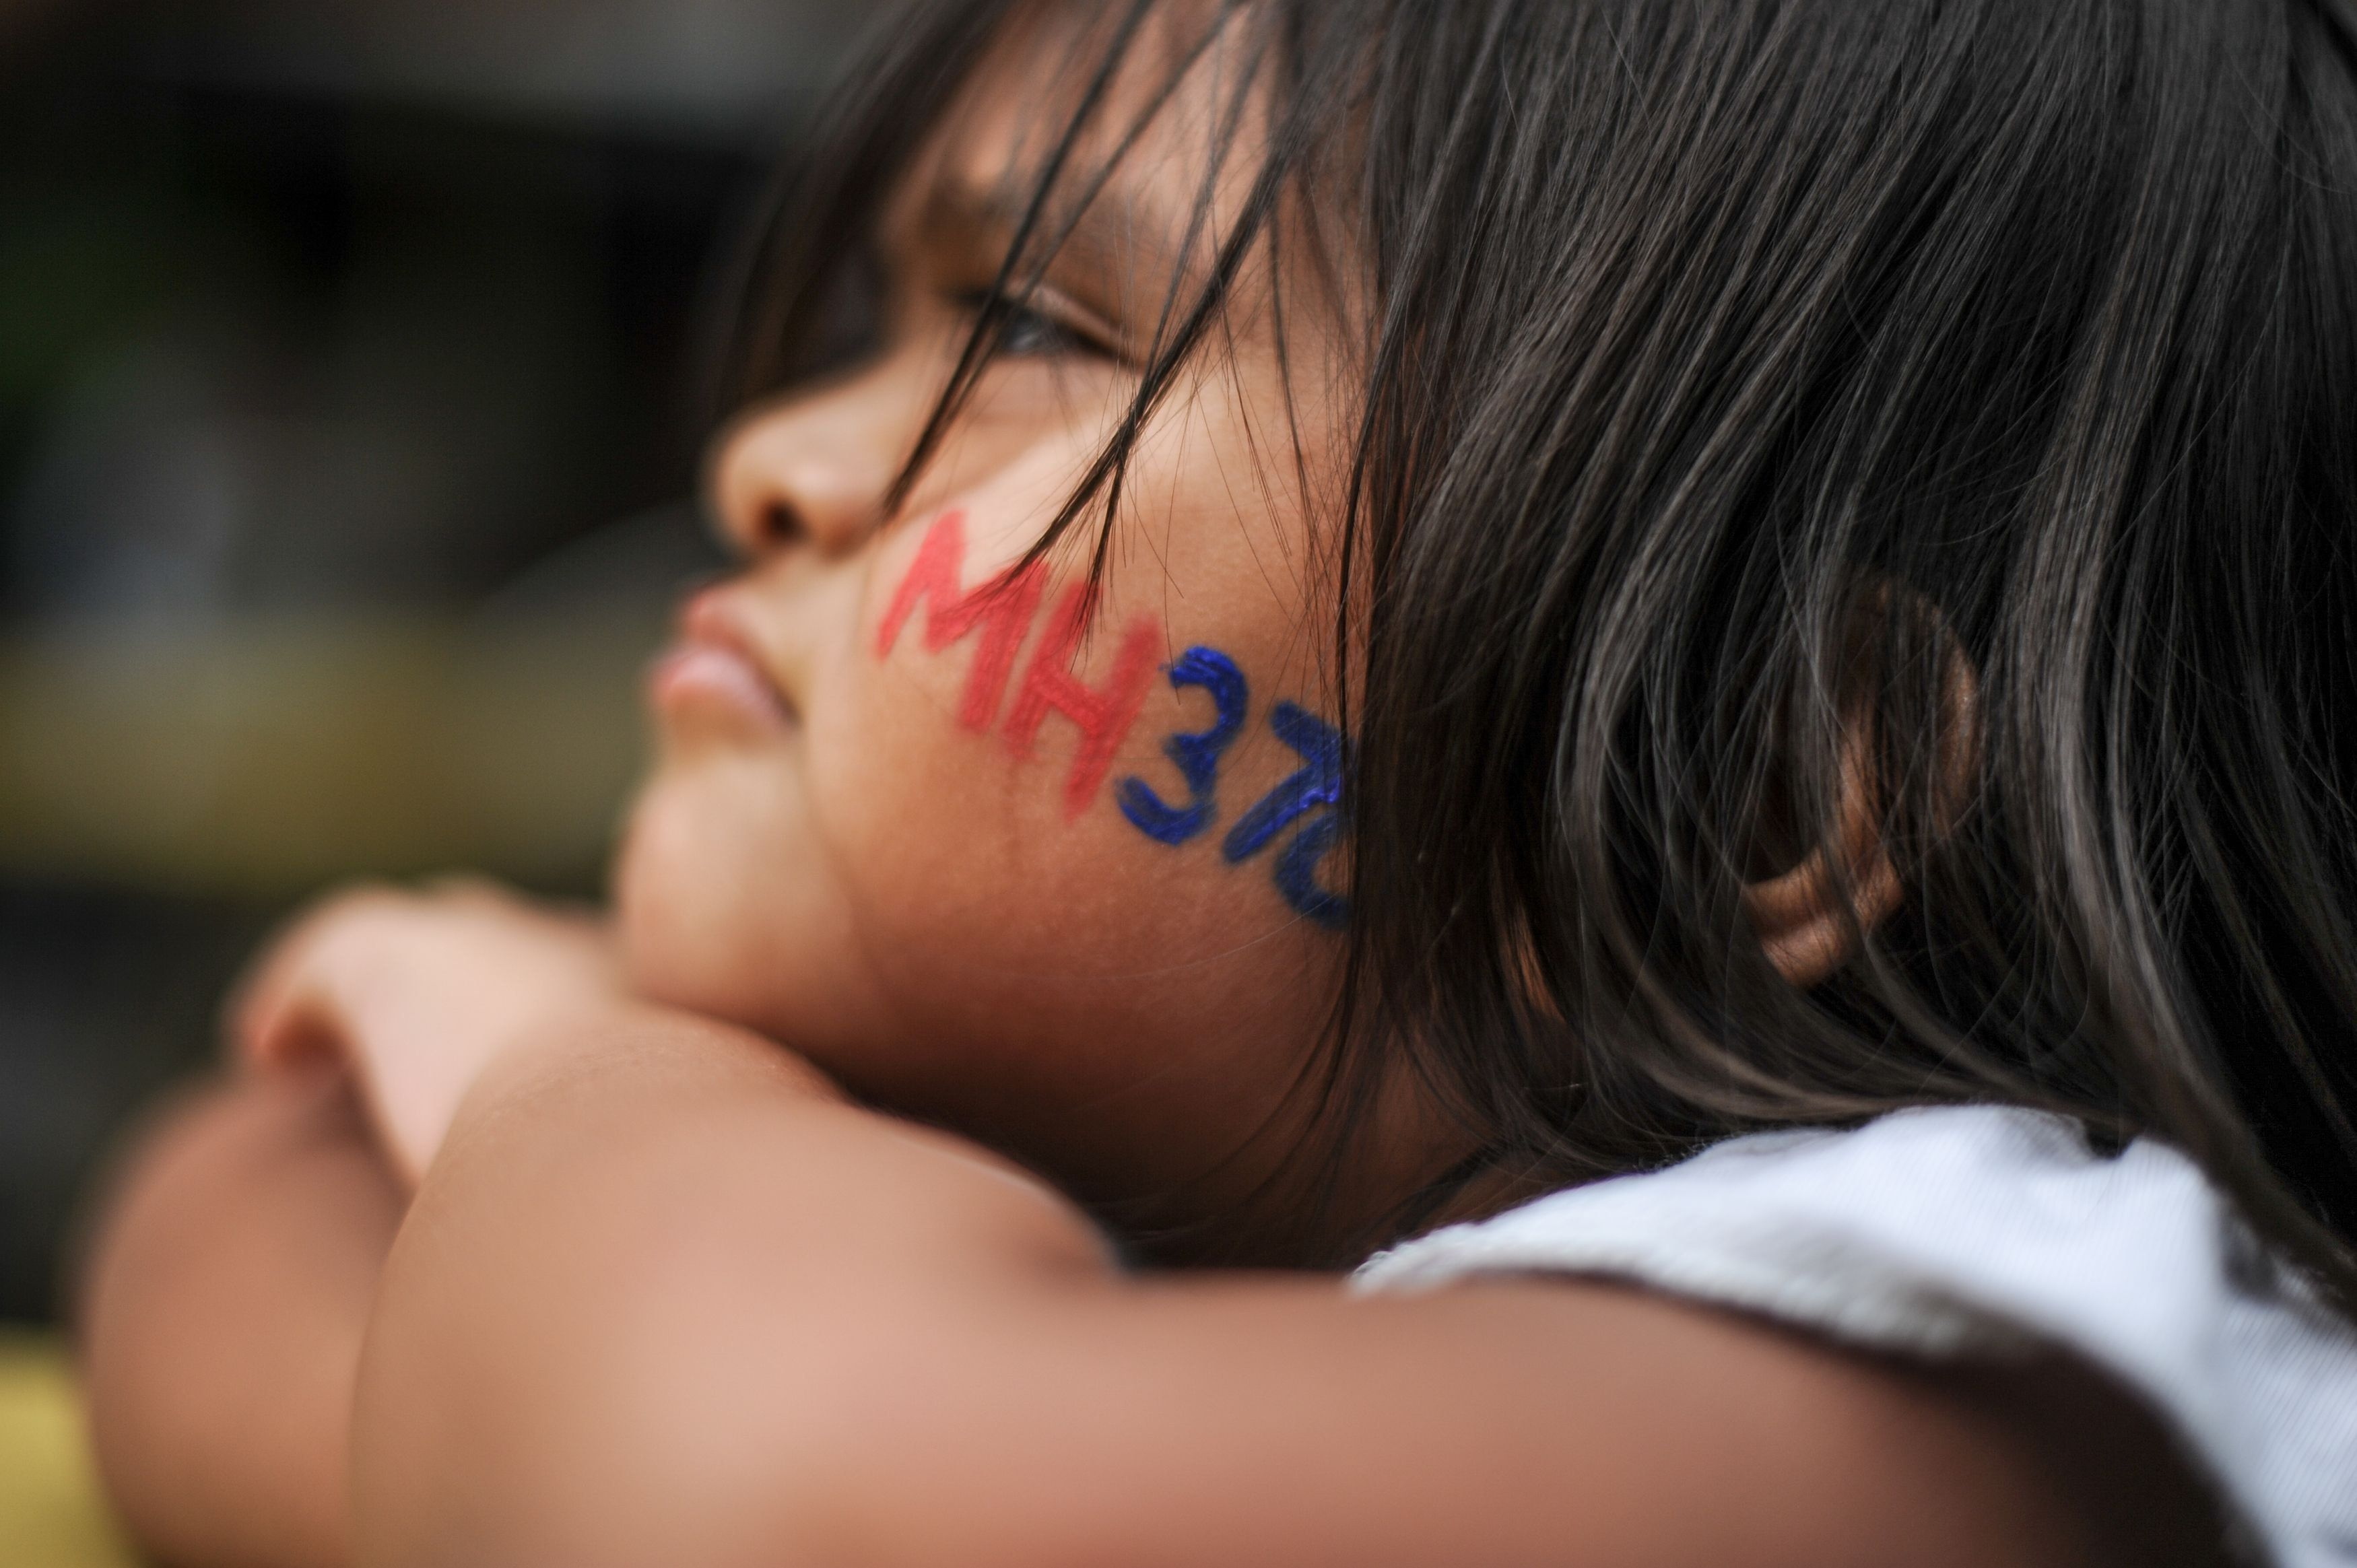 A boy with his face painted with the missing Malaysia Airlines ill-fated flight MH370 logo looks on during a memorial event in Kuala Lumpur on March 6, 2016.   Families of those lost on MH370 are preparing mark the upcoming second anniversary of when the Malaysia Airlines flight disappeared on March 8, 2014.  / AFP / MOHD RASFAN        (Photo credit should read MOHD RASFAN/AFP/Getty Images)